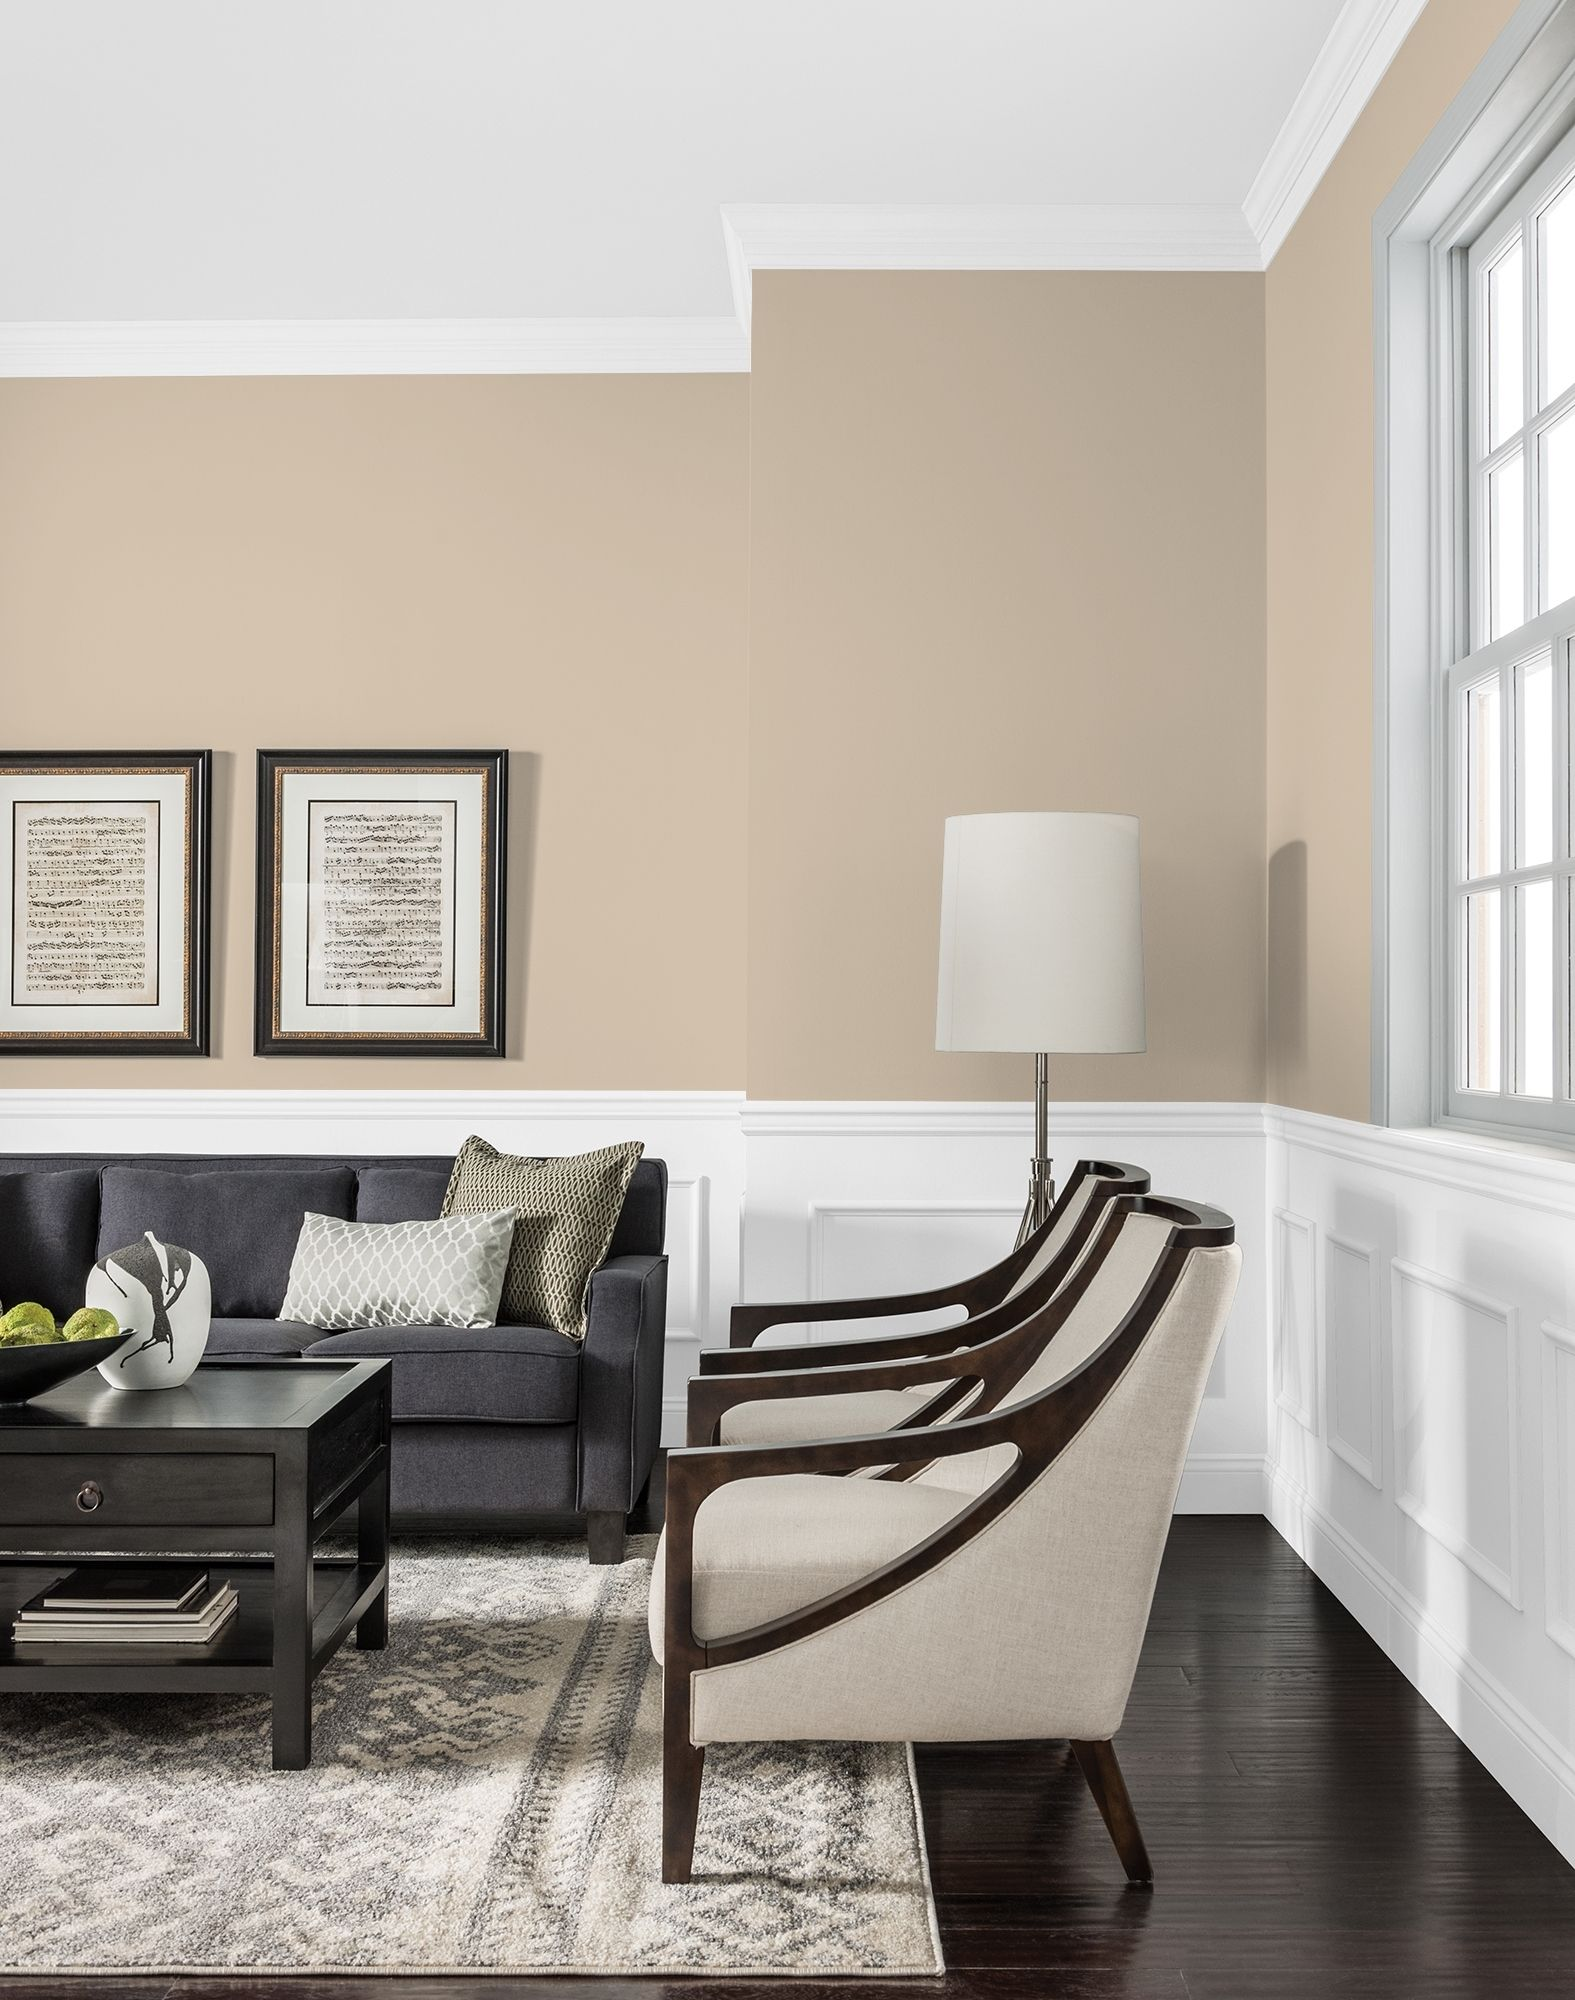 a stately neutral sand is pefect for interior main wall colors contrast this neutral with